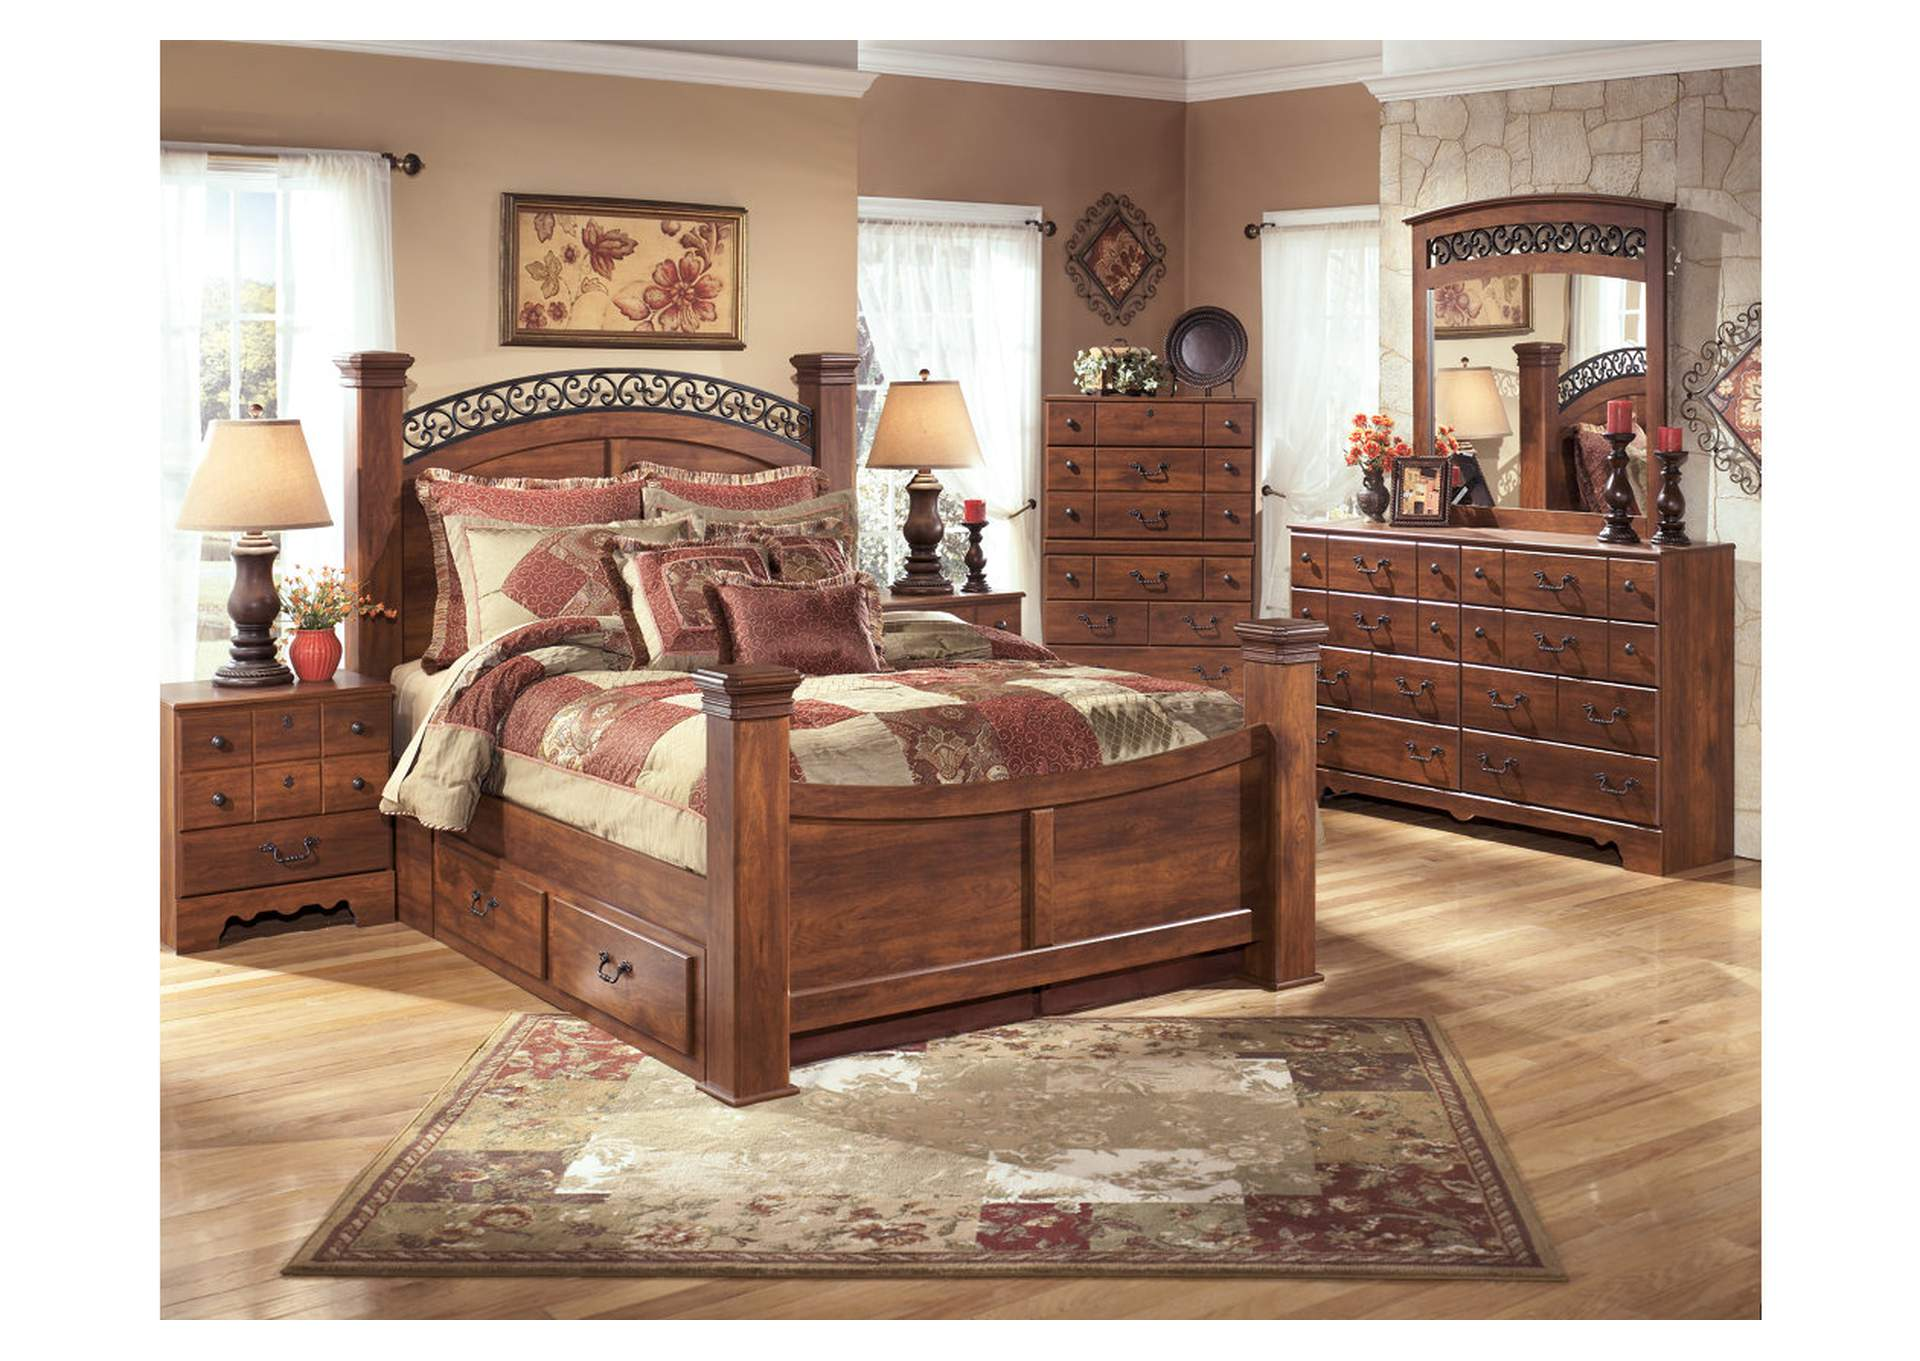 Timberline Queen Poster Storage Bed w/Dresser, Mirror, Drawer Chest & Nightstand,Signature Design By Ashley